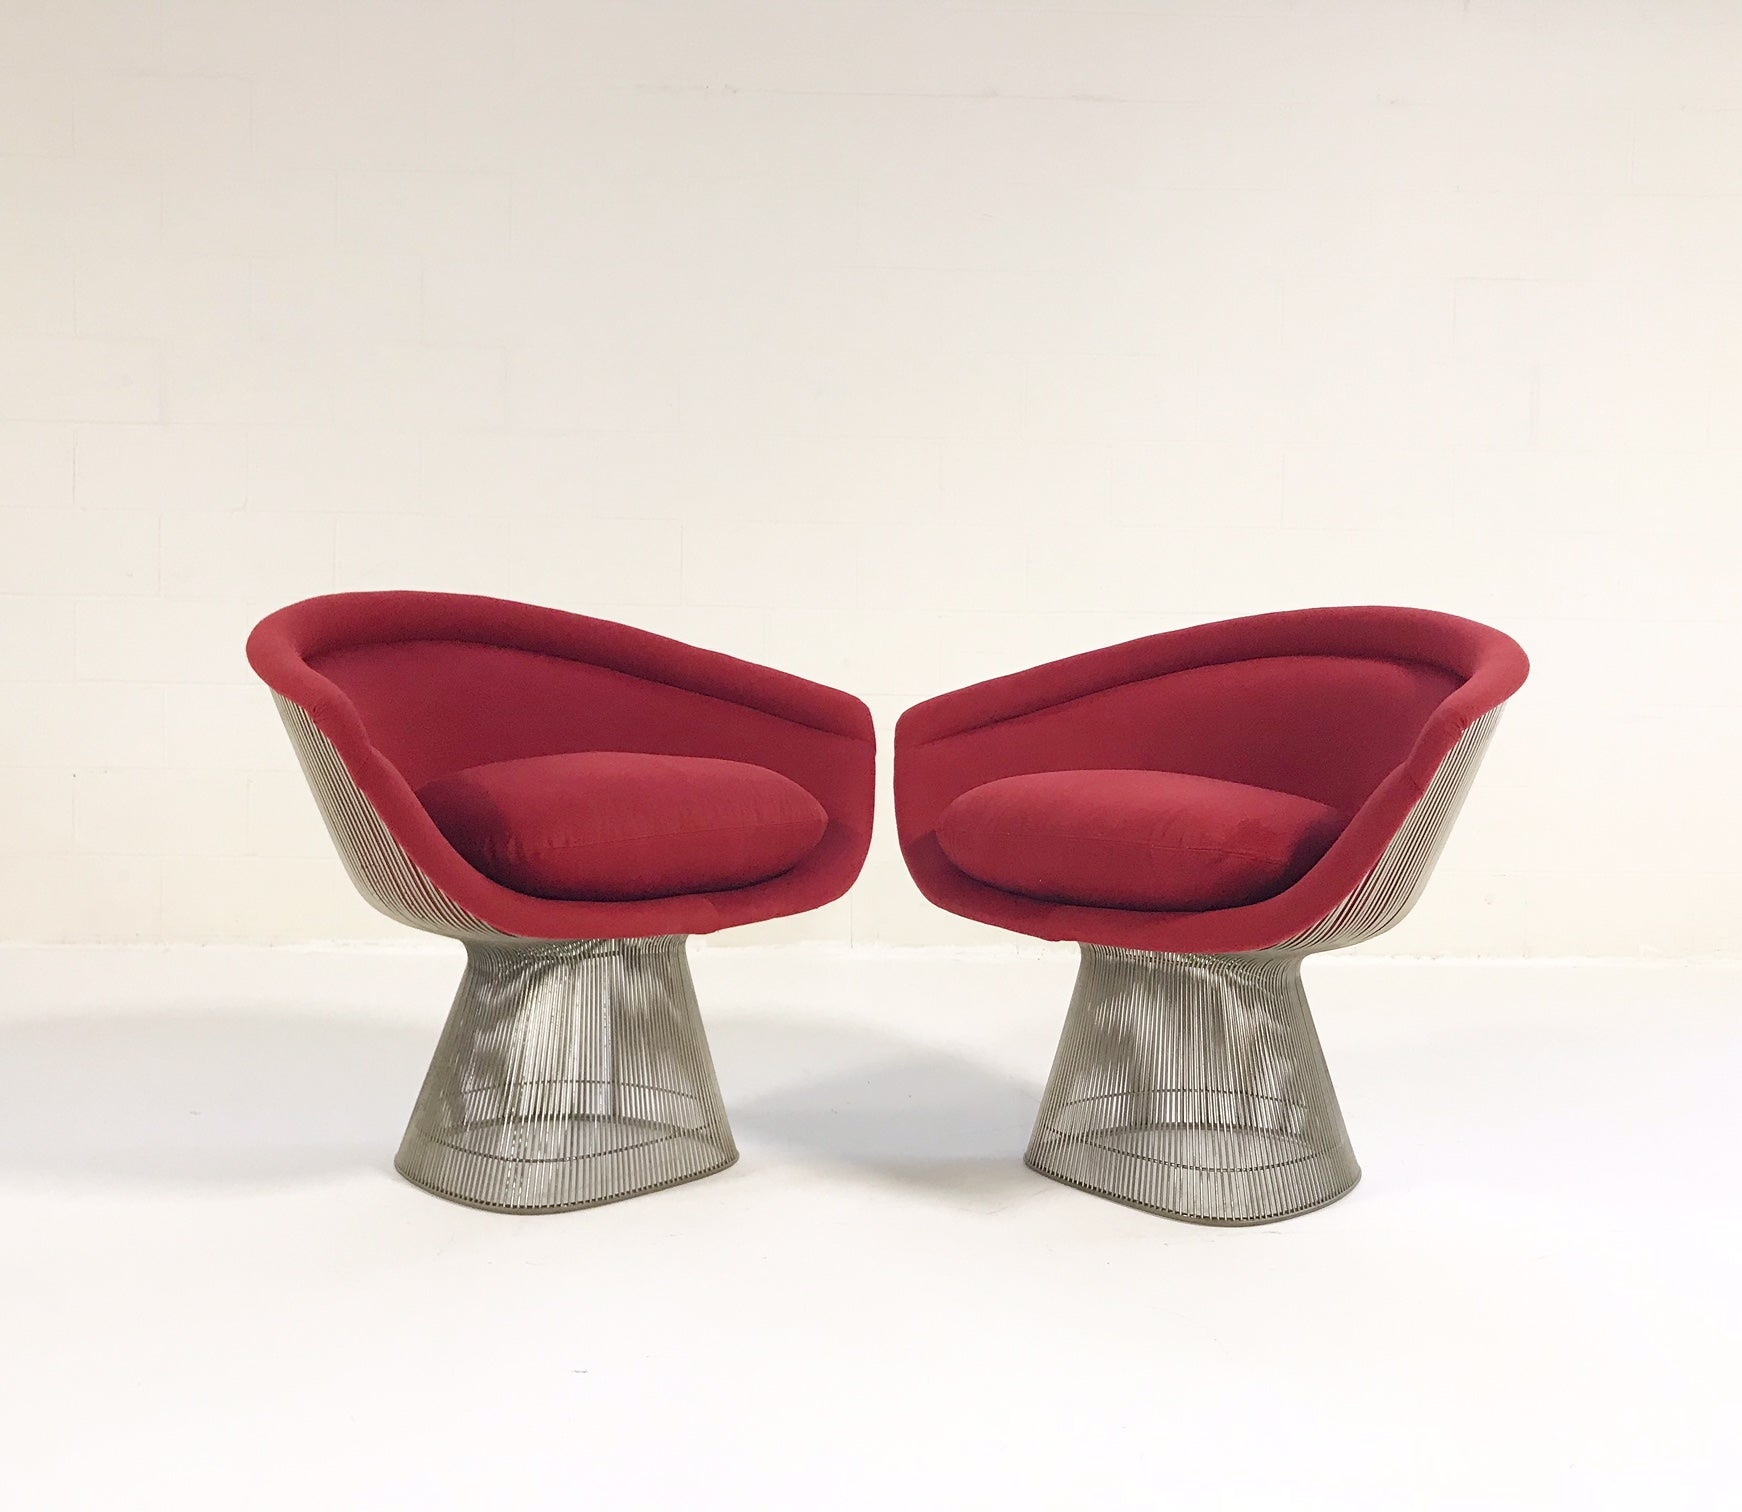 Lounge Chairs in Loro Piana Cashmere, pair - FORSYTH